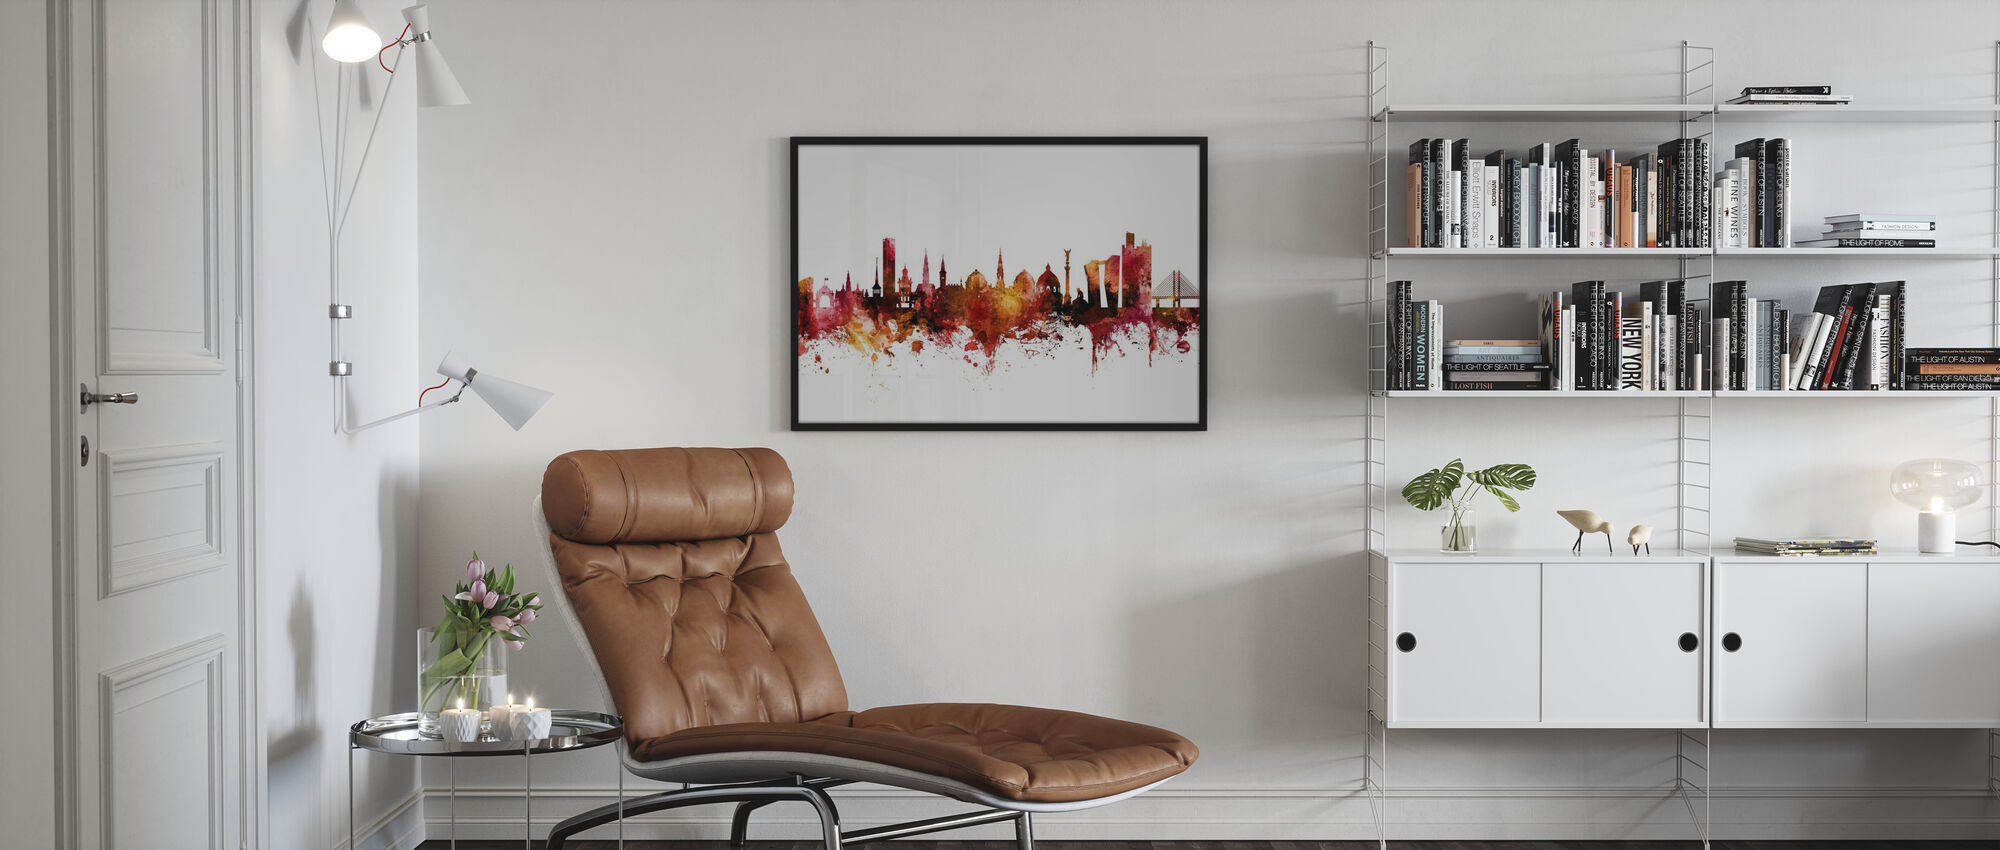 Copenhagen Denmark Skyline - Framed print - Living Room